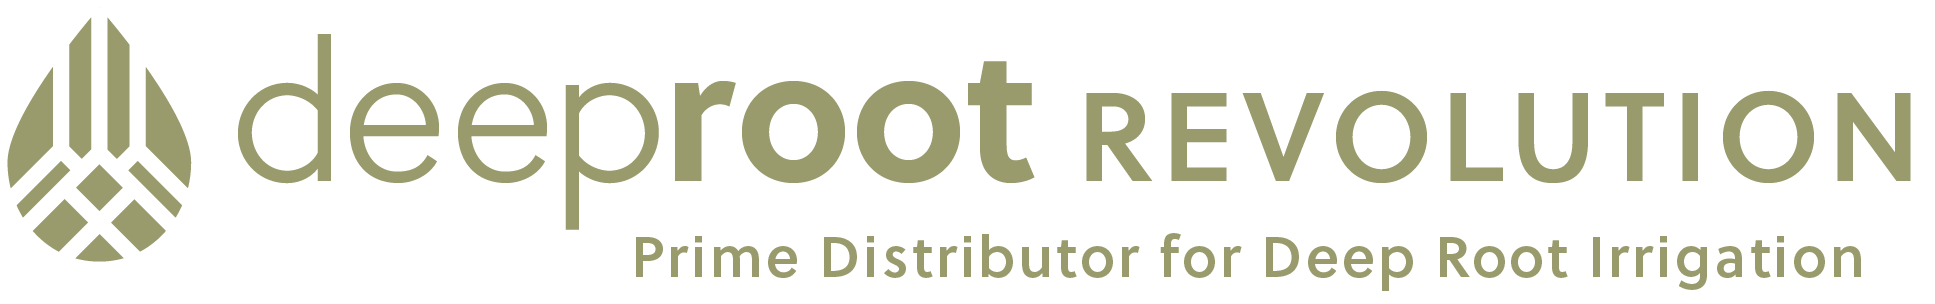 Welcome to the Deep Root Revolution Deep Root Irrigation Systems